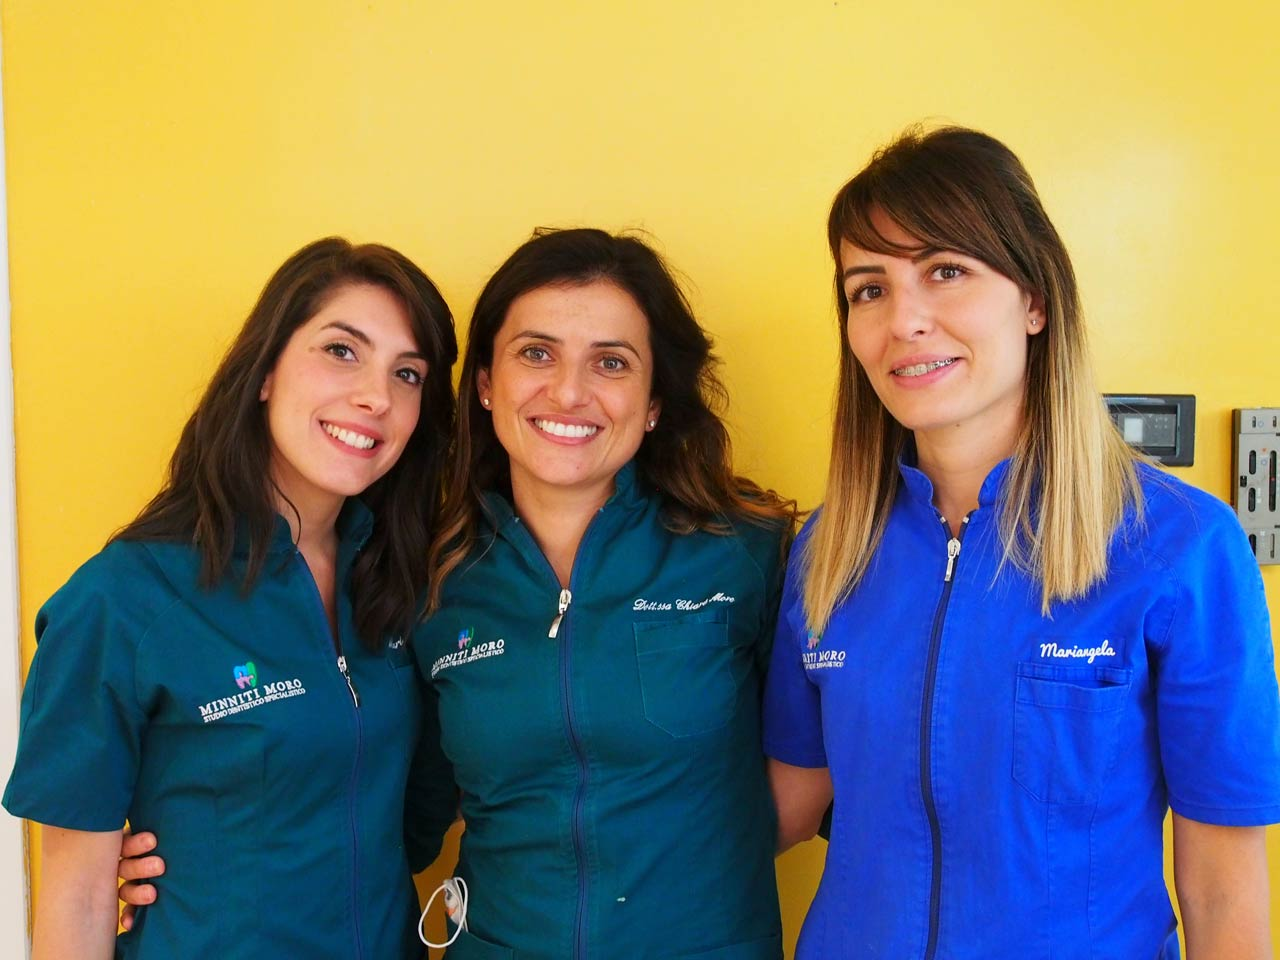 STAFF DELLO STUDIO DENTISTICO MINNITI MORO